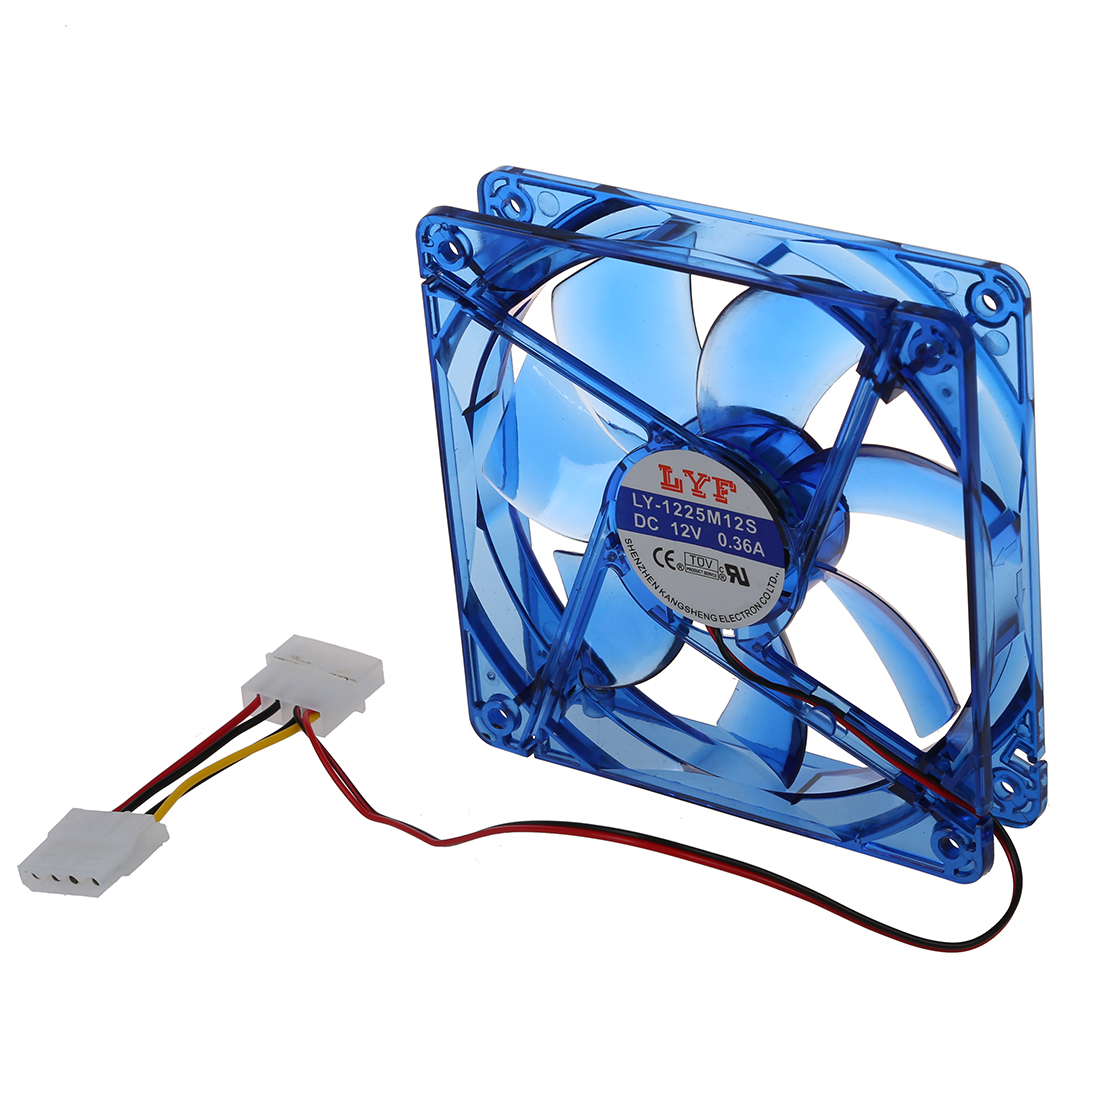 DC <font><b>12V</b></font> 4-Pin 4 Blue LED PC Computer Enclosure <font><b>Fan</b></font> <font><b>120</b></font> x 25 <font><b>mm</b></font> image